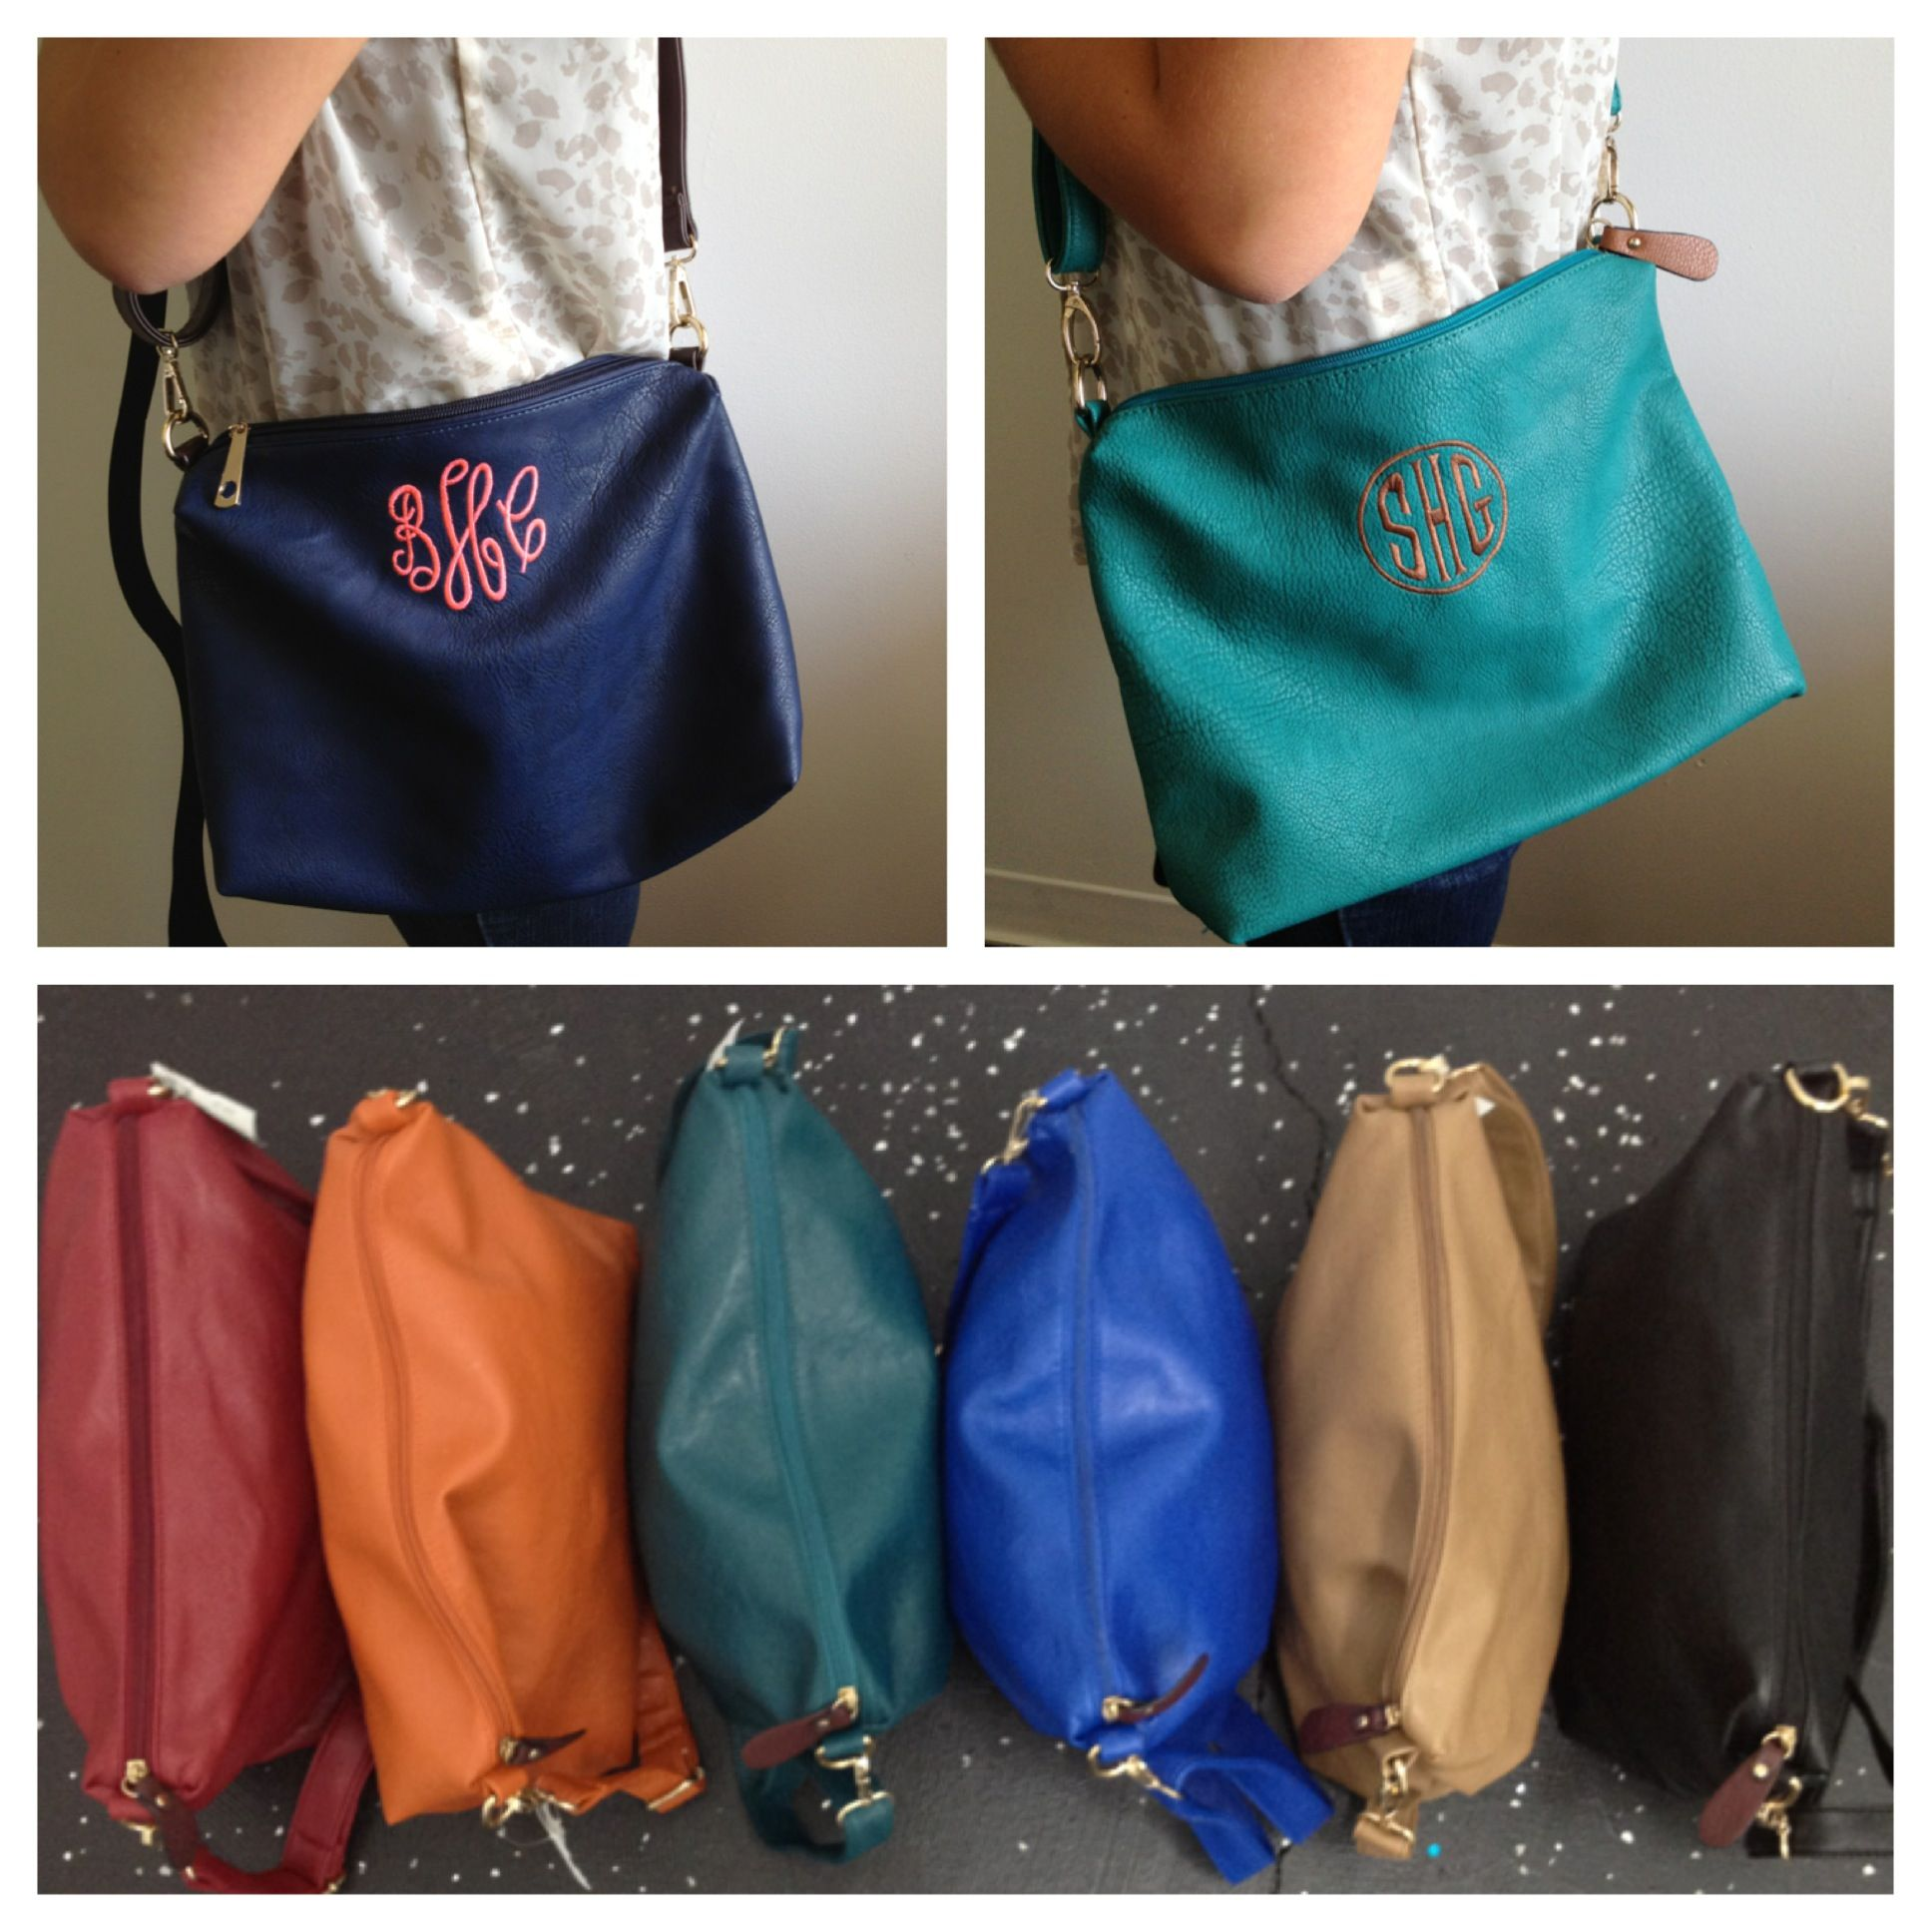 309 Best Images About Crossover Stuff On Pinterest: Best 25+ Cross Body Bags Ideas On Pinterest